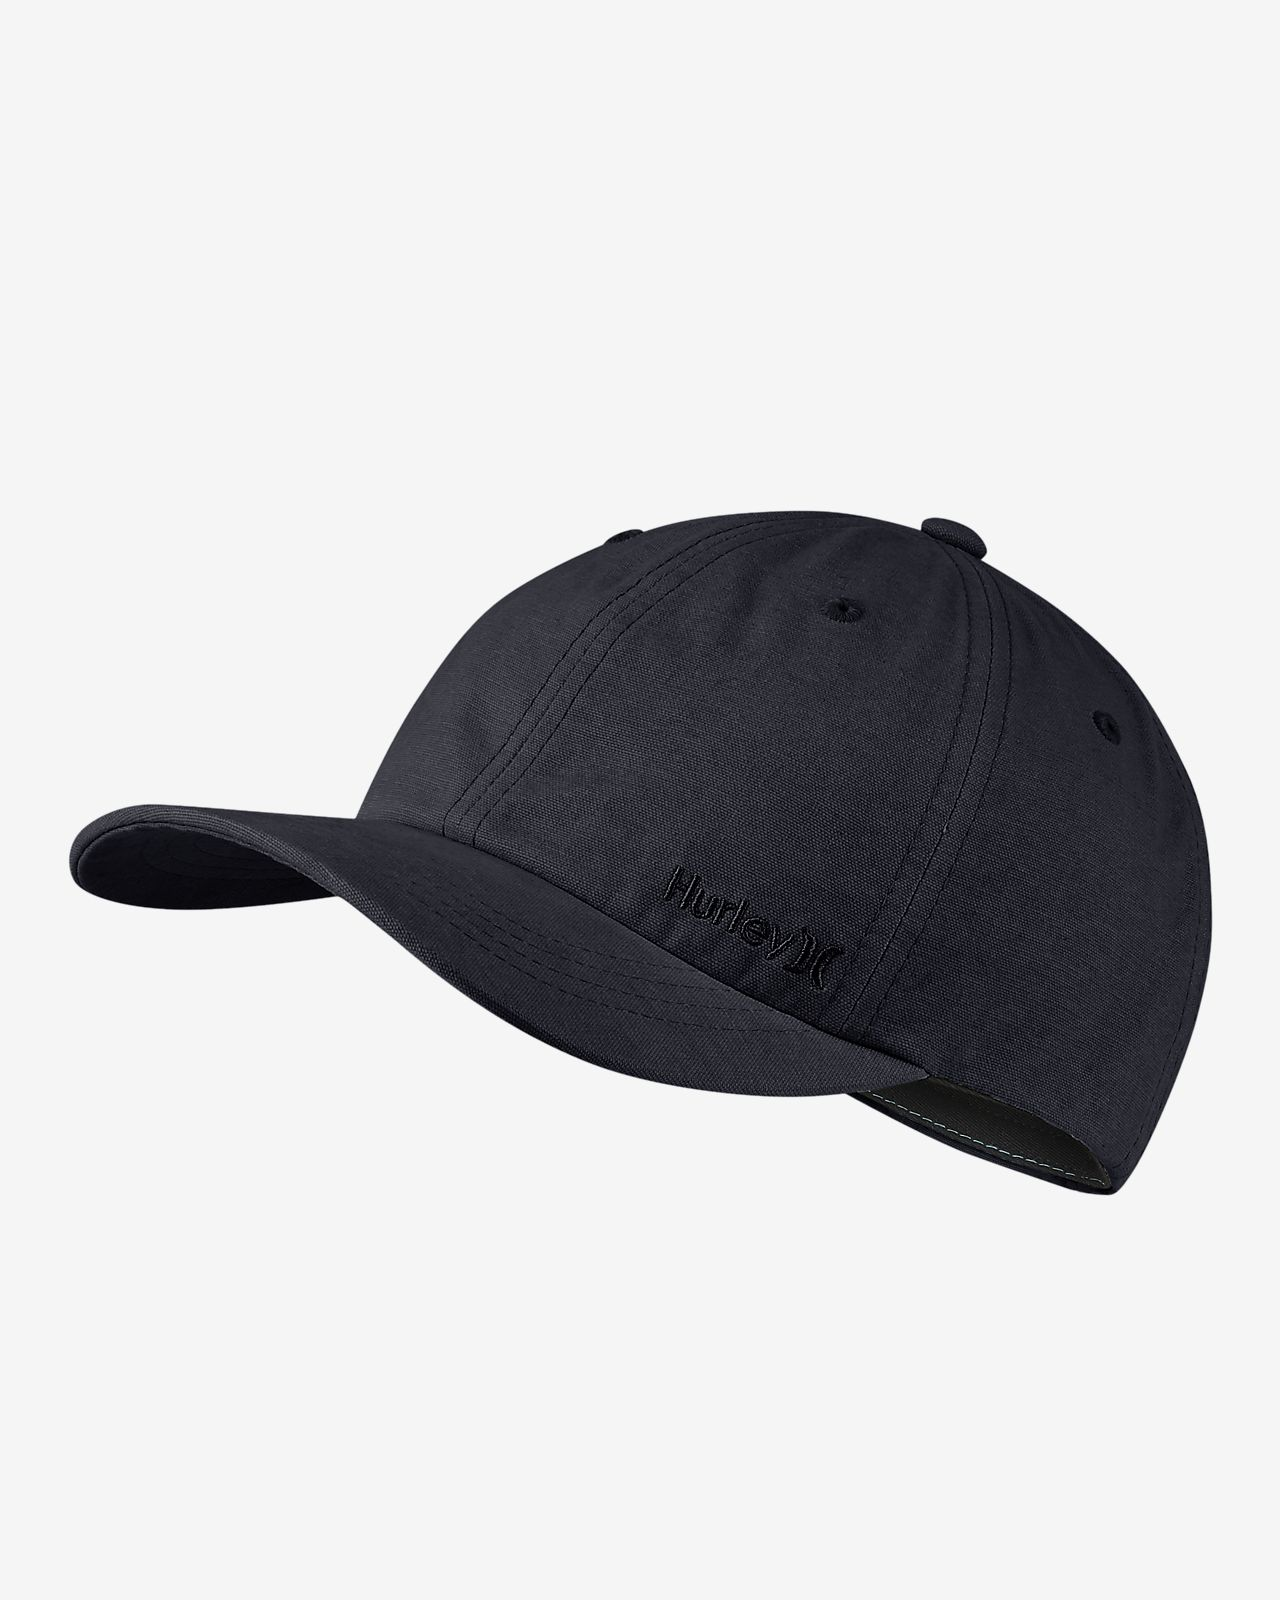 Hurley andy mens hat jwgt jpg 1280x1600 Curved flat bill hats nike 38ee9d0c3fea